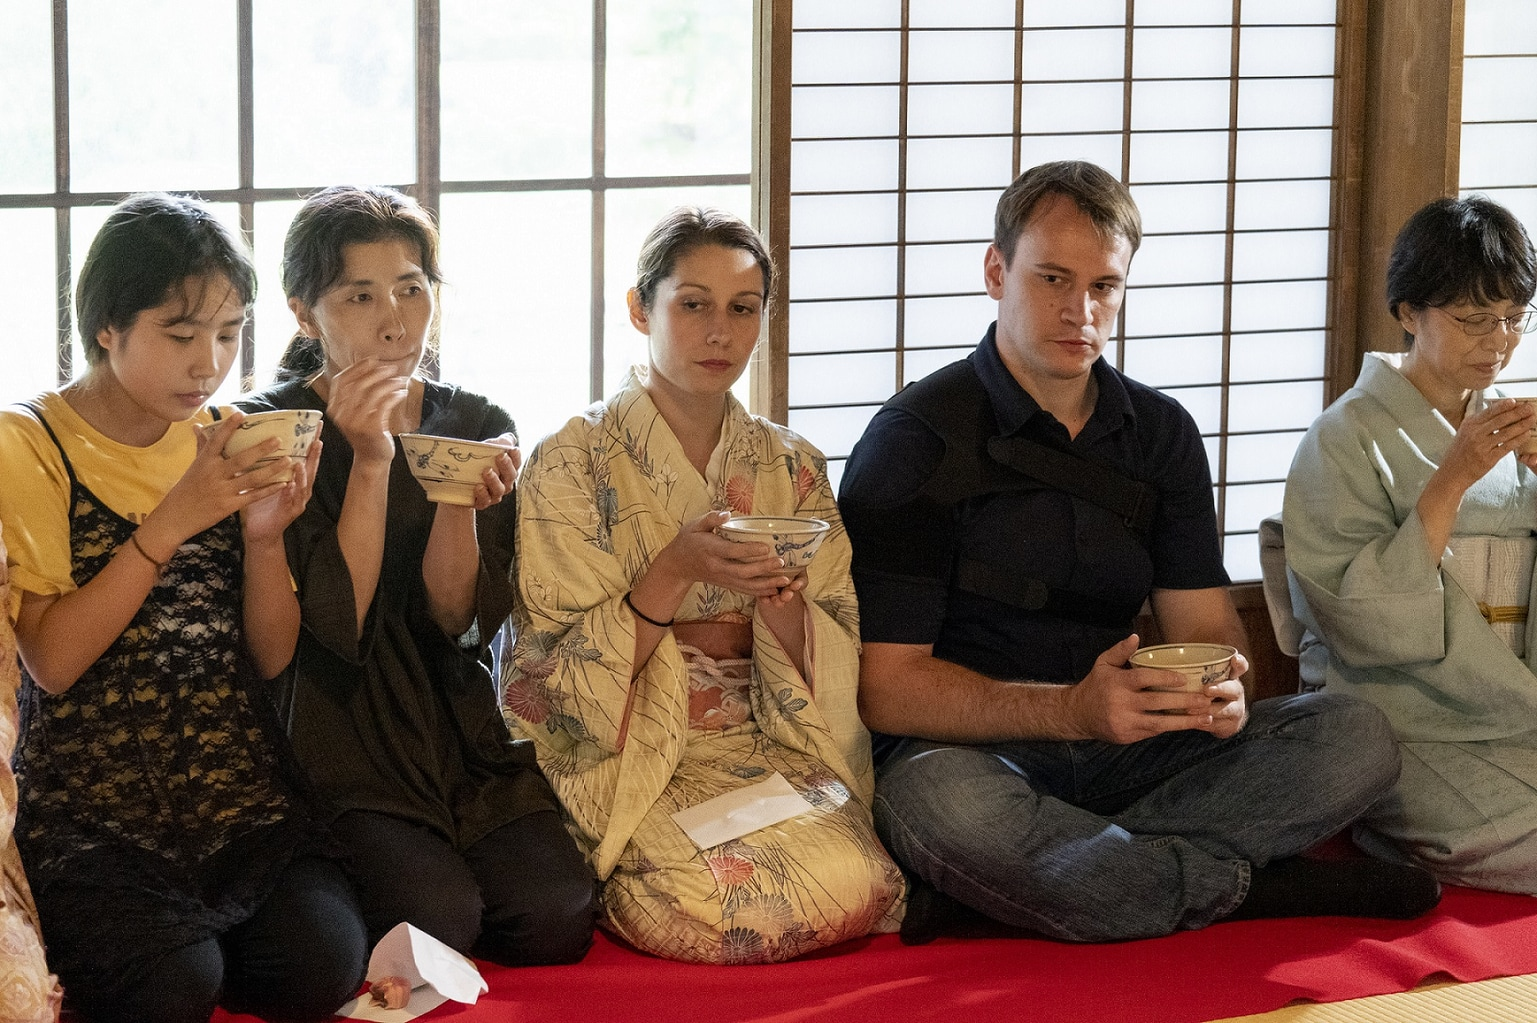 Foreign visitors learn Japanese tea ceremony in Tokyo